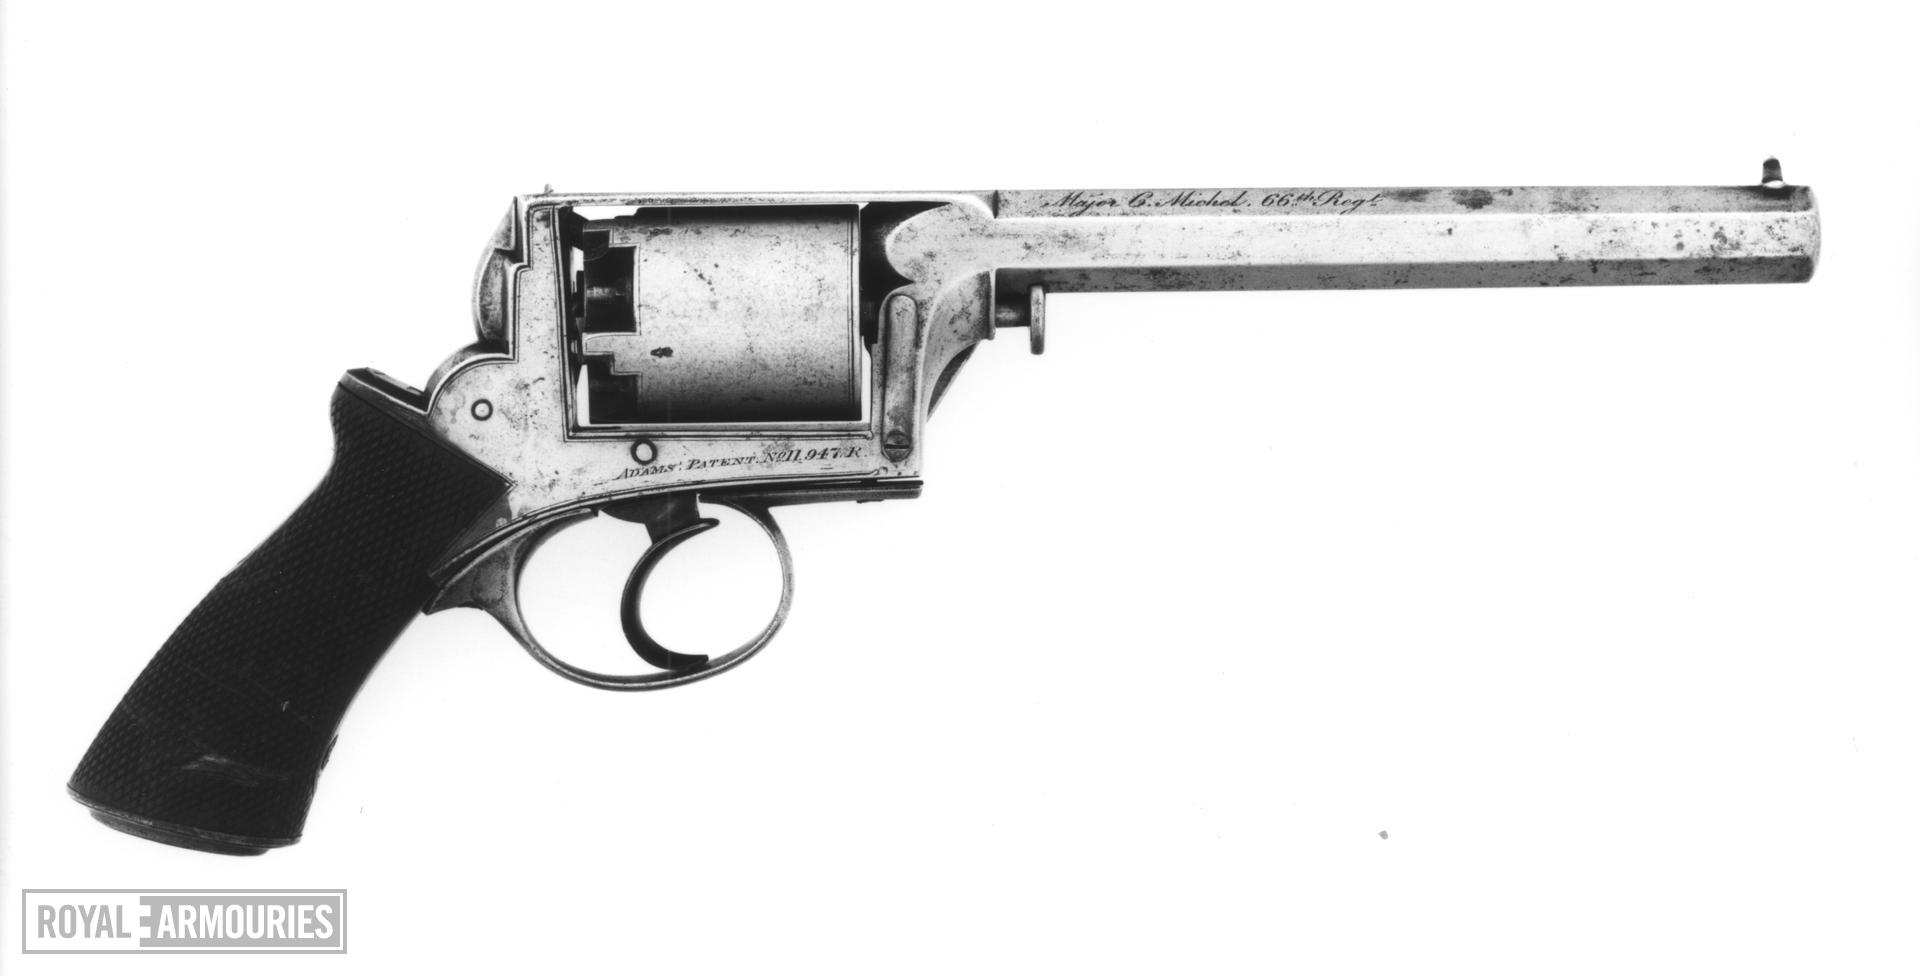 Percussion five-shot revolver - Adams Model 1851 Retailed by Deane Adams and Deane, King William St. London